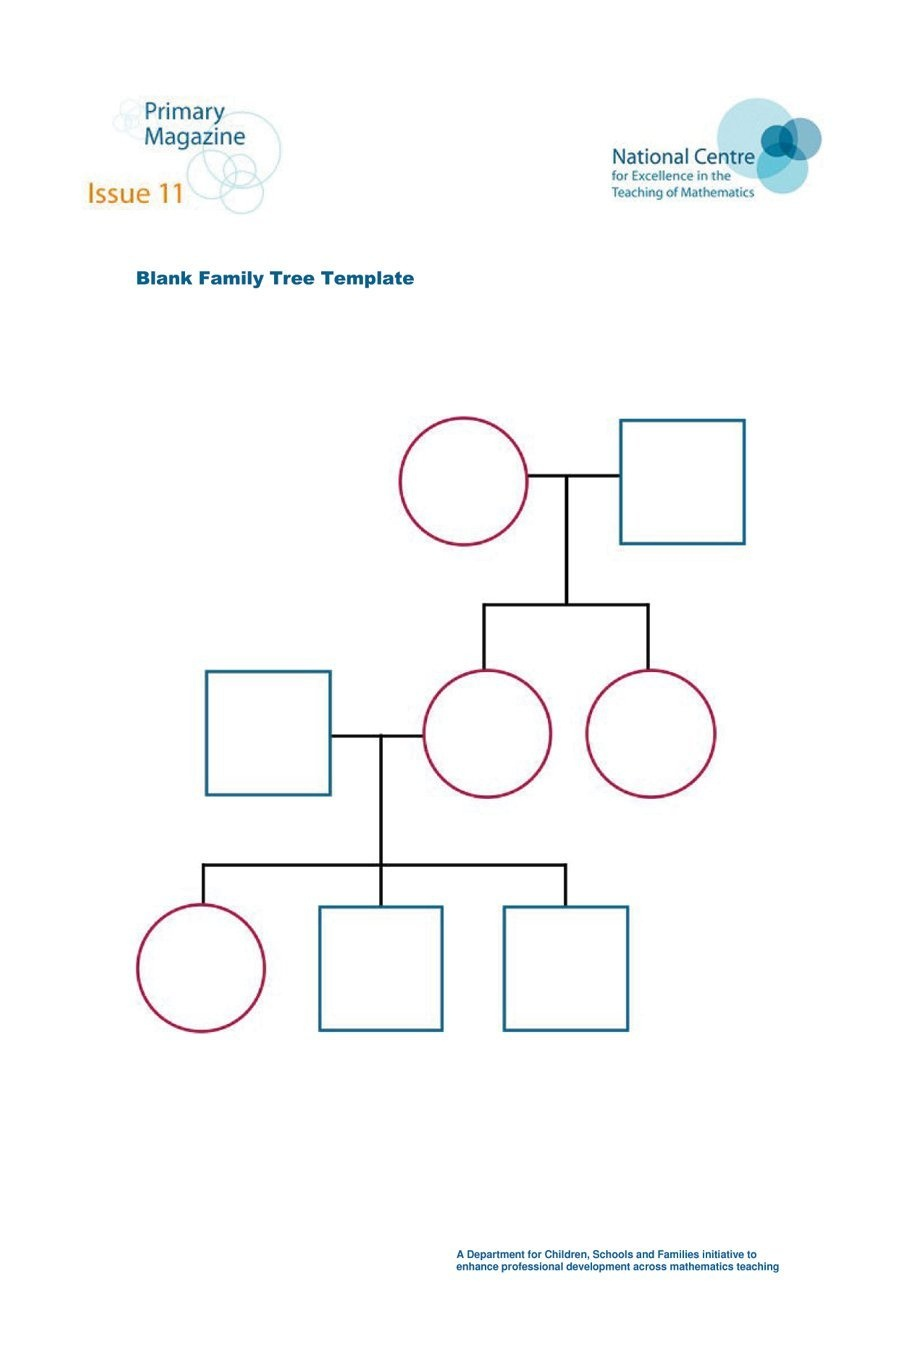 50+ Free Family Tree Templates (Word, Excel, Pdf) ᐅ Template Lab - Family Tree Maker Online Free Printable